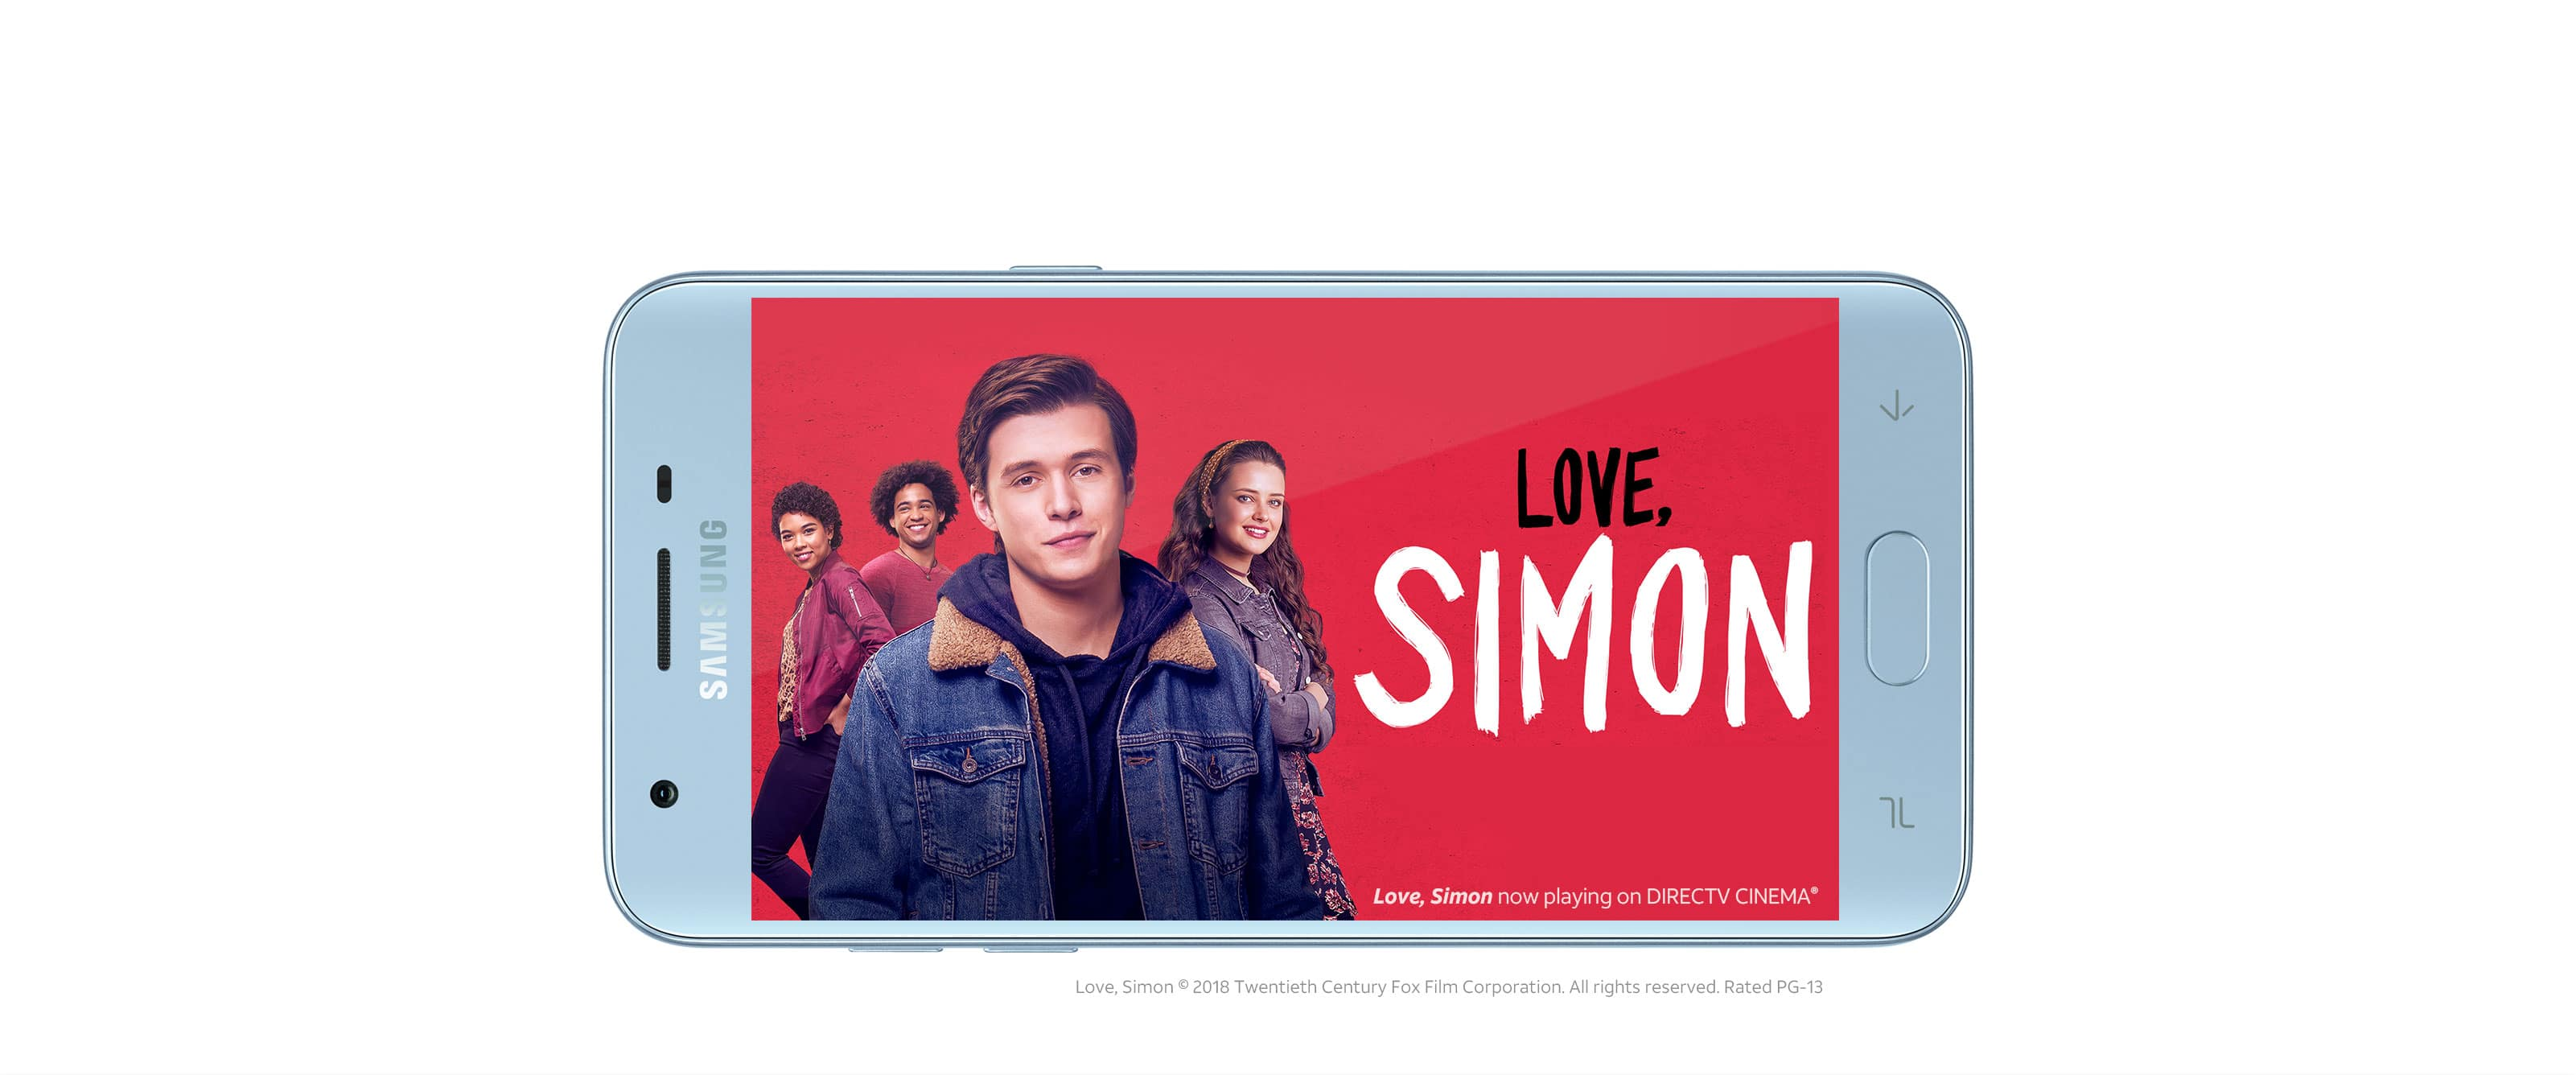 Love, Simon now playing on DIRECTV CINEMA®. Love, Simon © 2018 Twentieth Century Fox Film Corporation. All rights reserved. Rated PG-13.